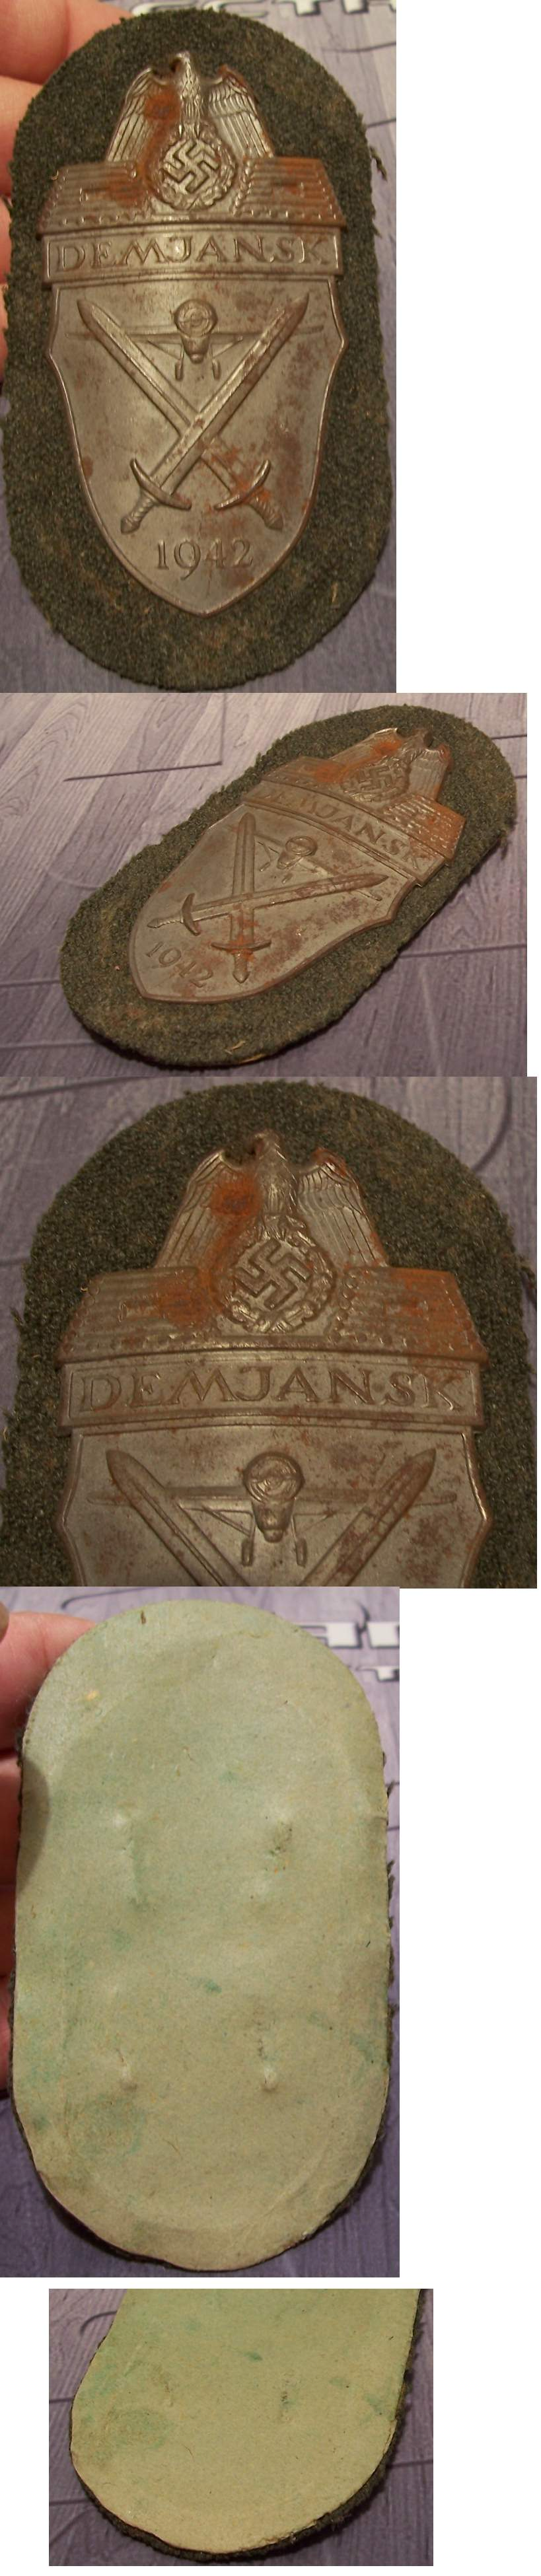 Army Demjansk Shield